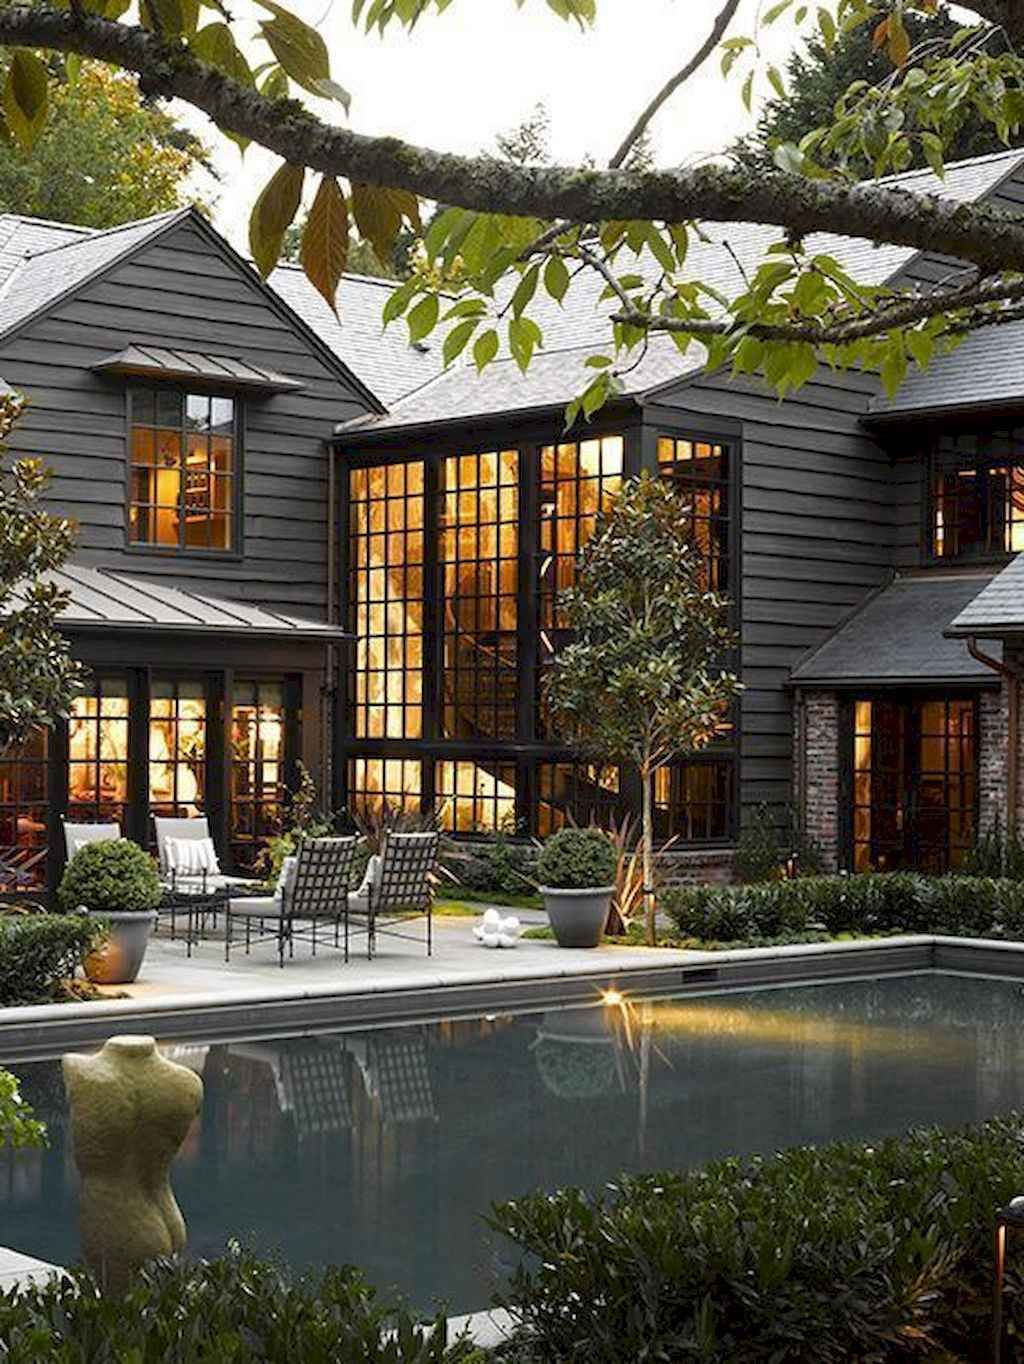 16 Enchanting Modern Entrance Designs That Boost The Appeal Of The Home: 01 Awesome Modern Farmhouse Exterior Design Ideas In 2020